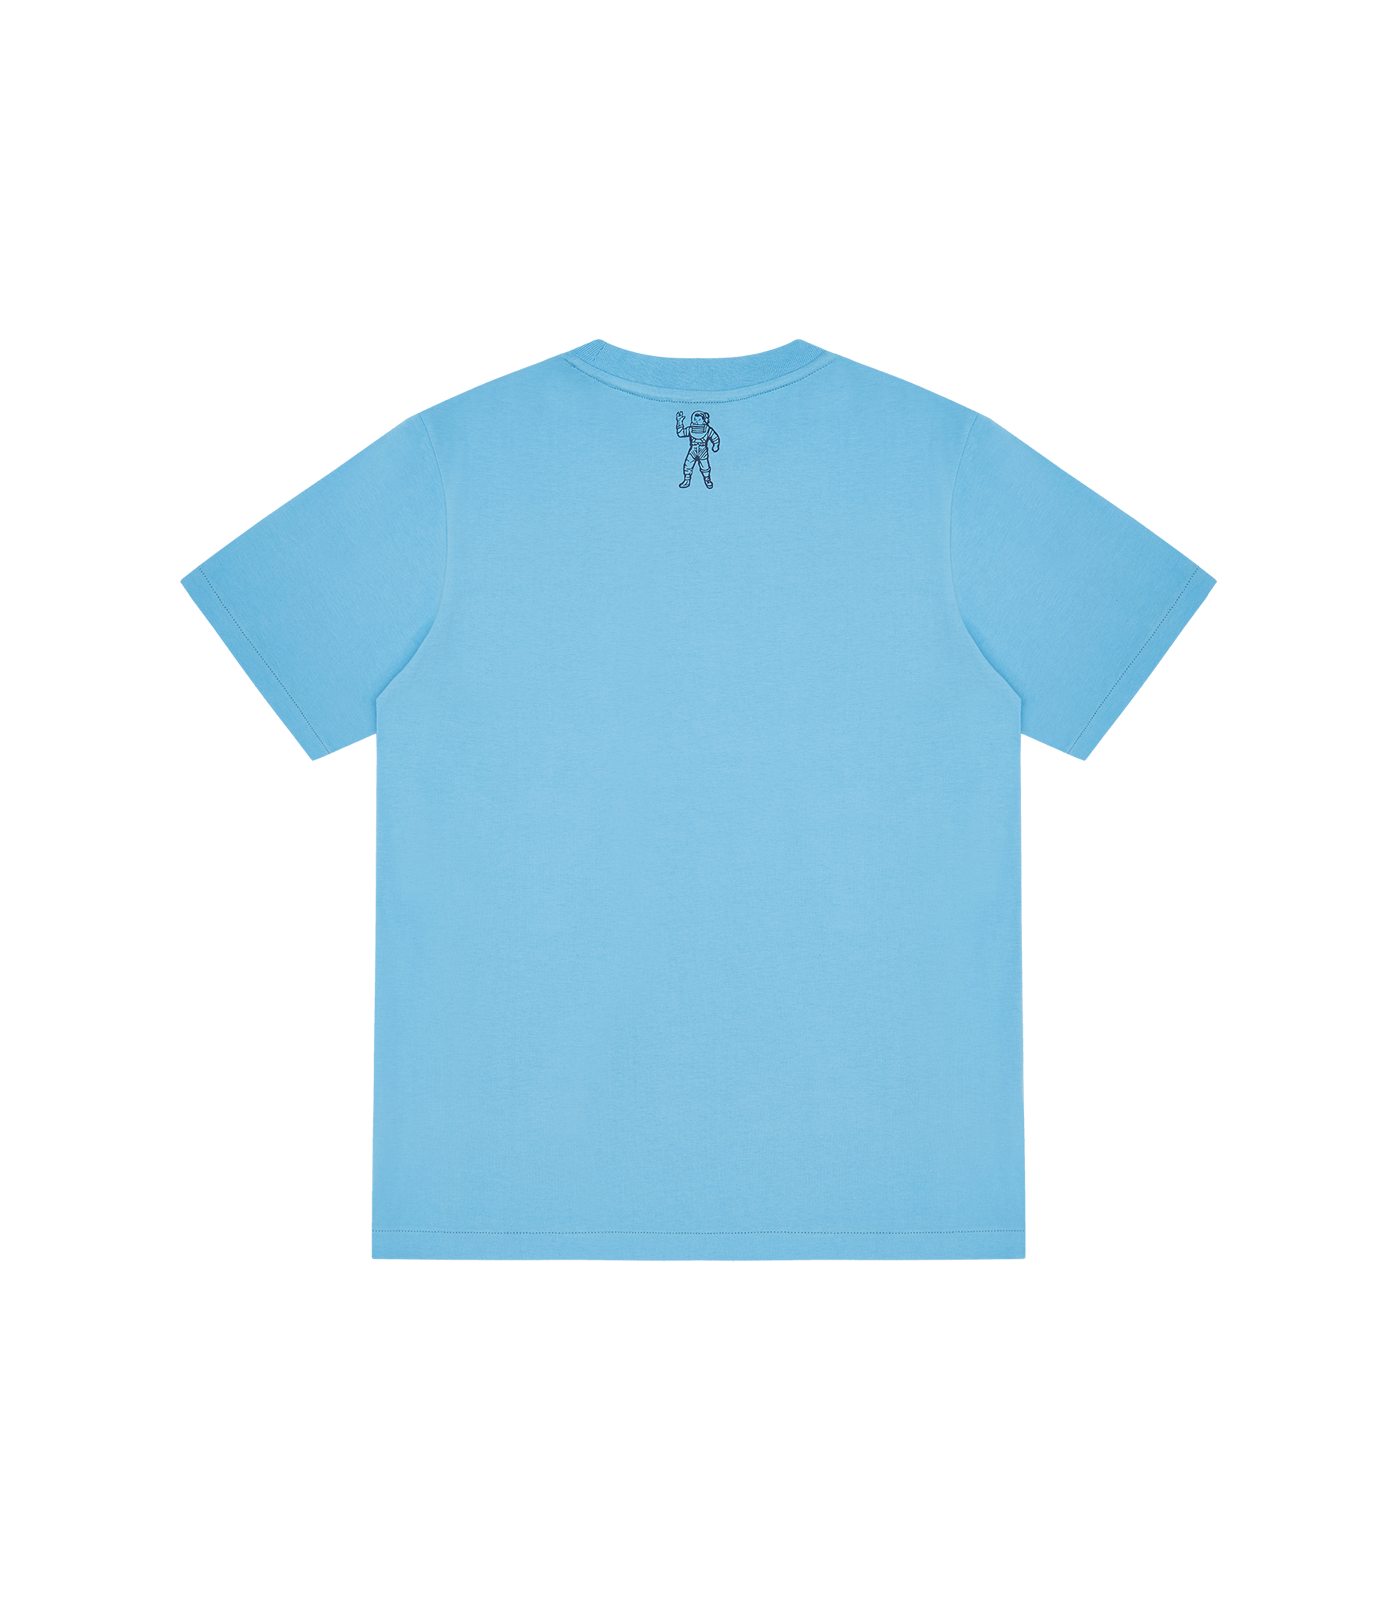 EU LOGO T-SHIRT - BLUE